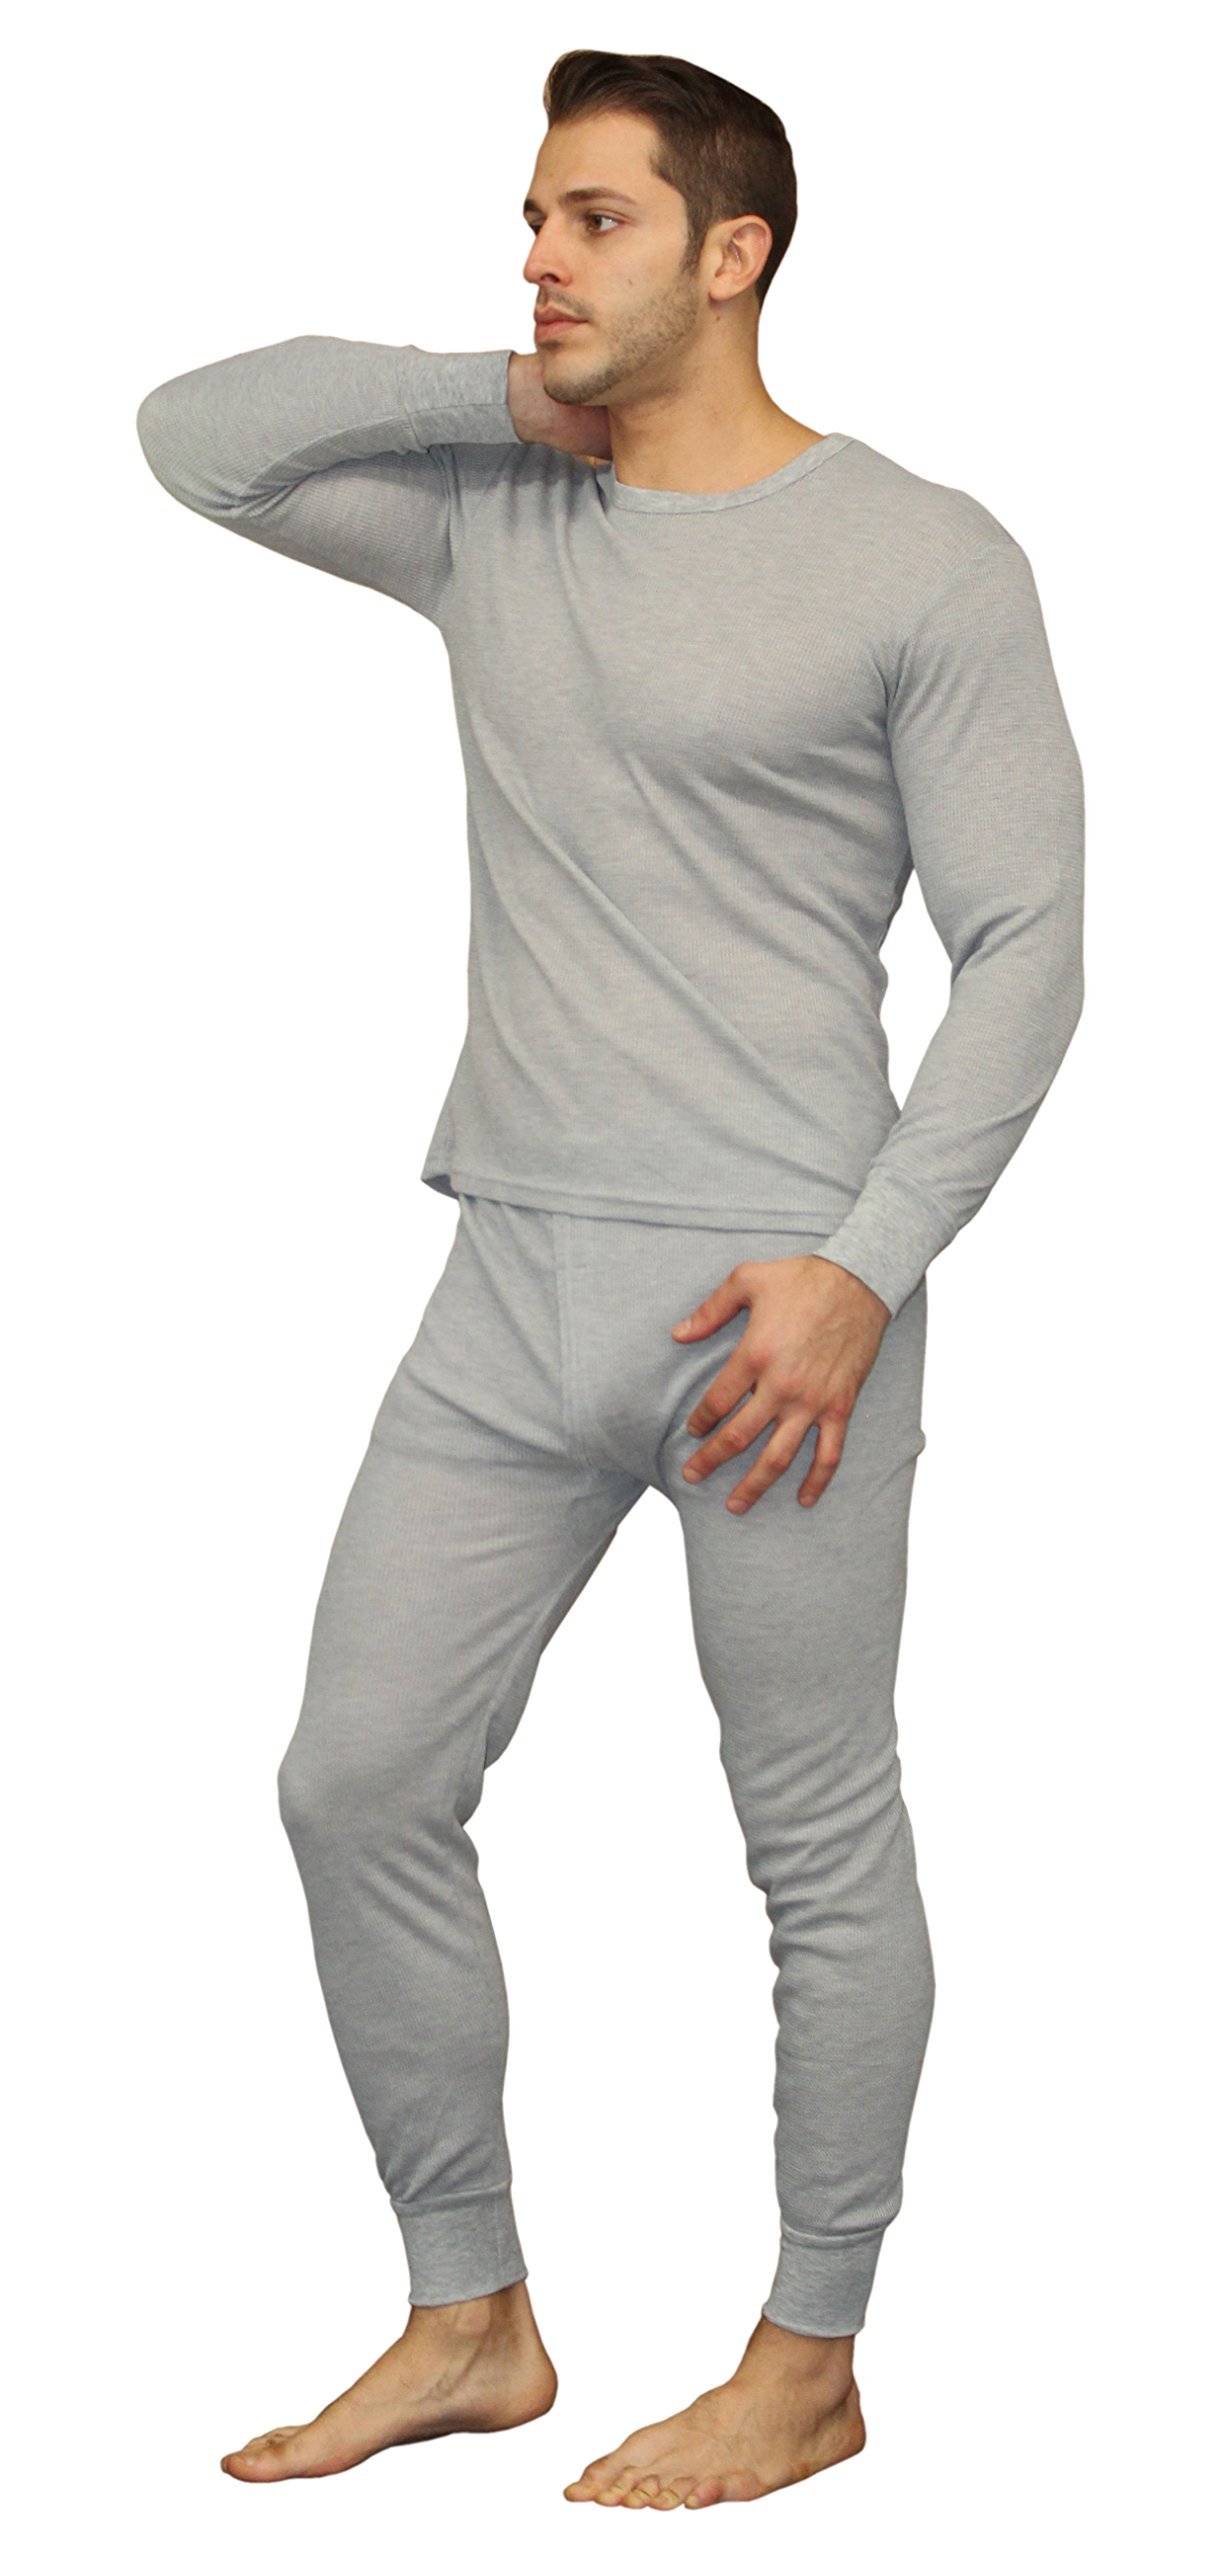 Men's Soft 100% Cotton Thermal Underwear Long Johns Sets - Waffle - Fleece Lined (X-Large, Fleece Lined - Heather Grey)